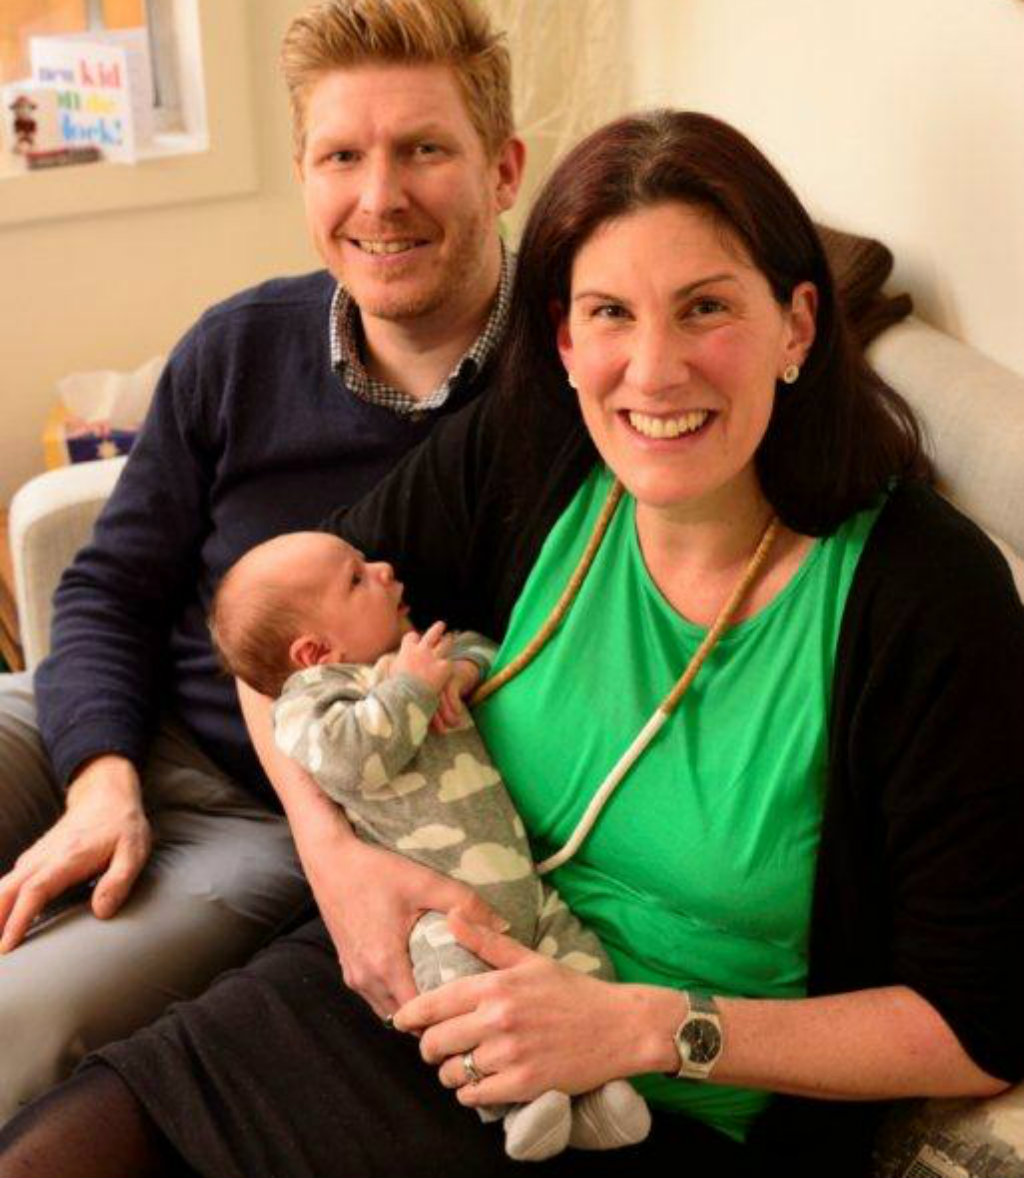 Mike and Victoria with their son Benjamin. (Supplied)